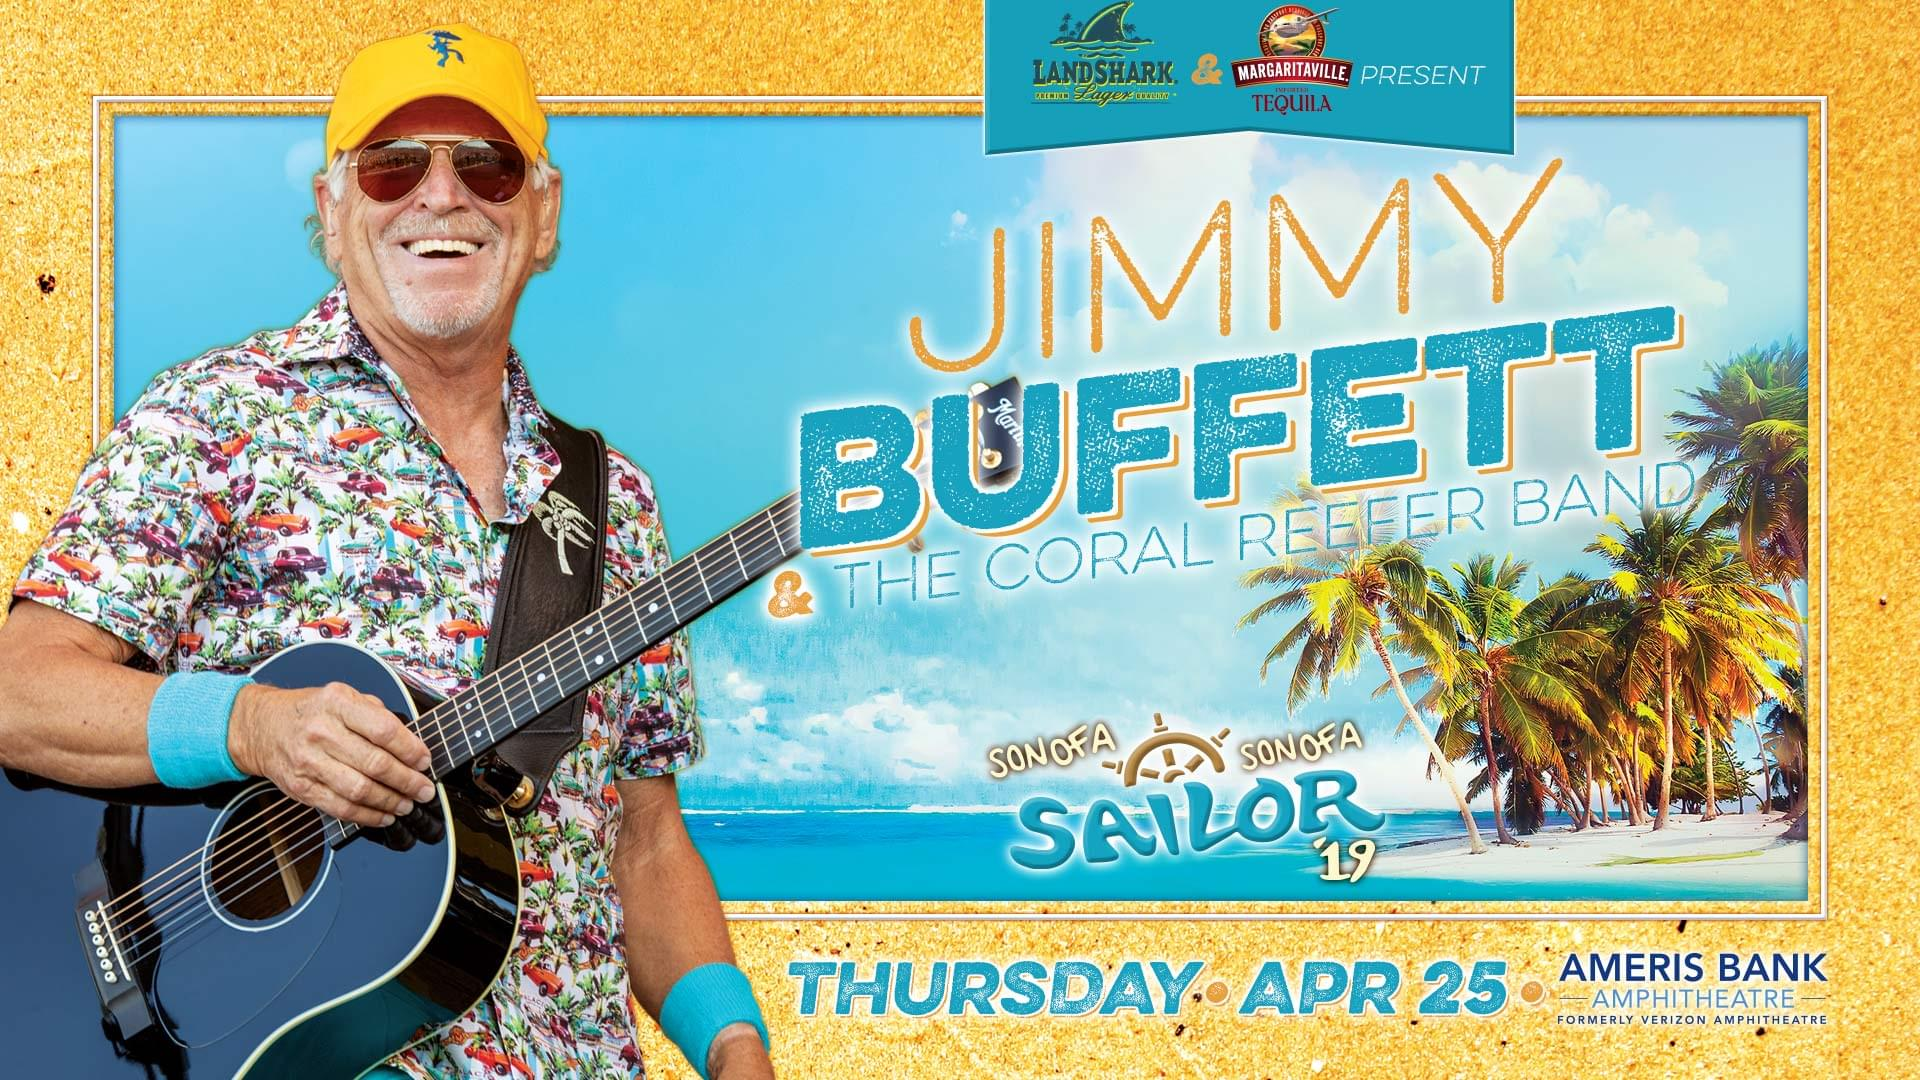 Dodging snowflakes with Jimmy Buffett